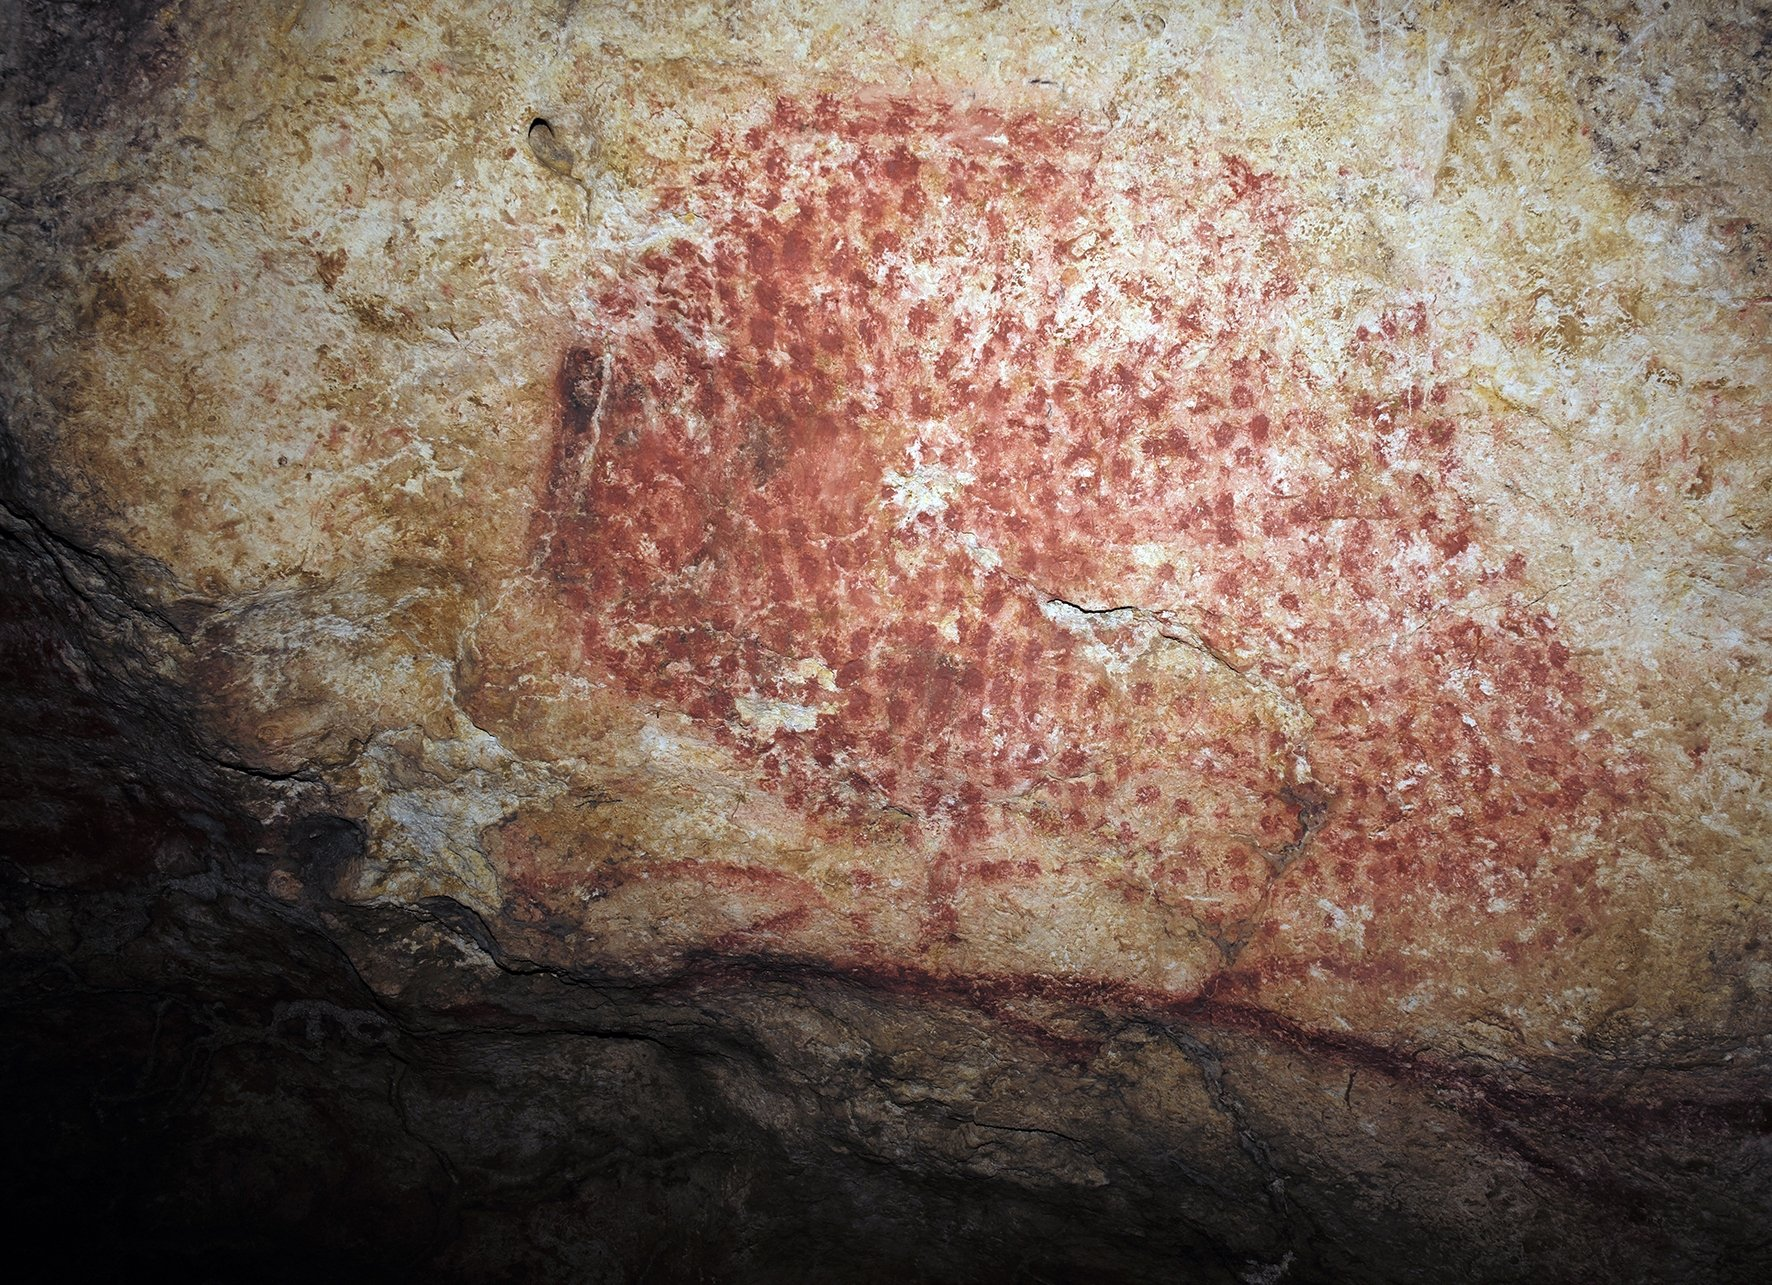 This photo provided by researcher Carole Fritz in February 2021 shows the prehistoric wall painting, near which the shell was found. (AP PHOTO)